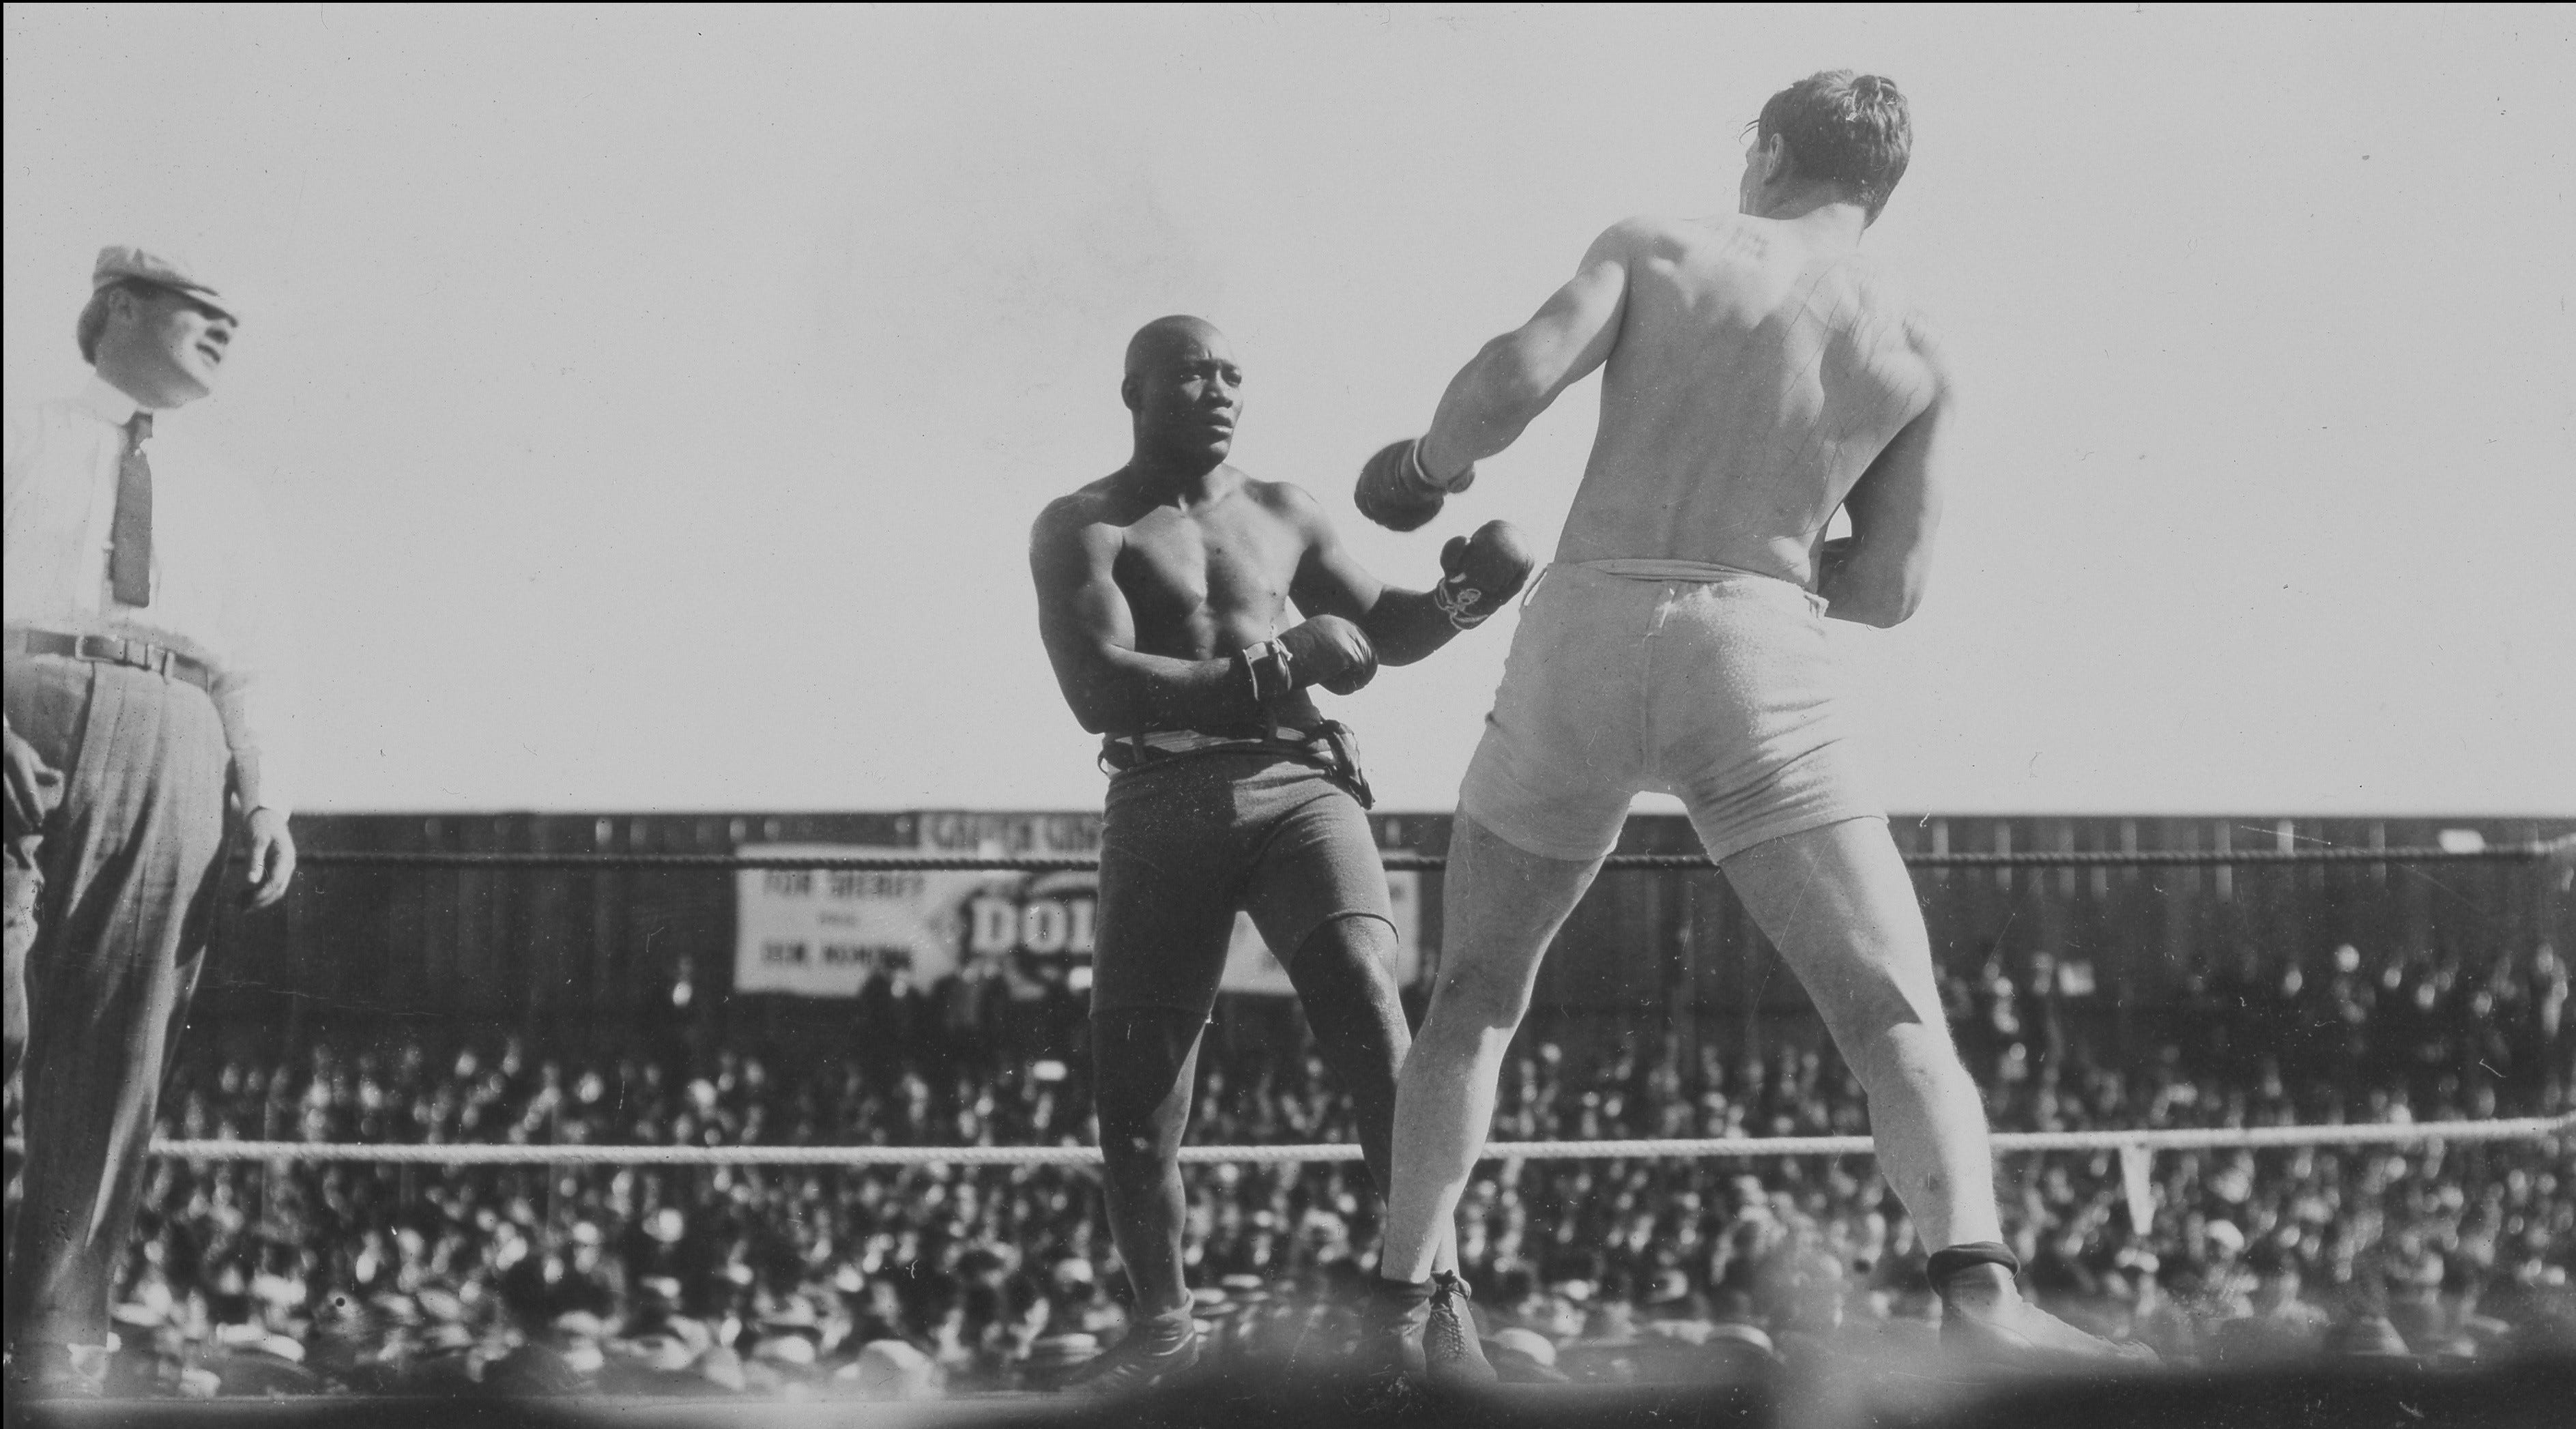 'It's about time:' The 97-year history of Jack Johnson's quest for a pardon